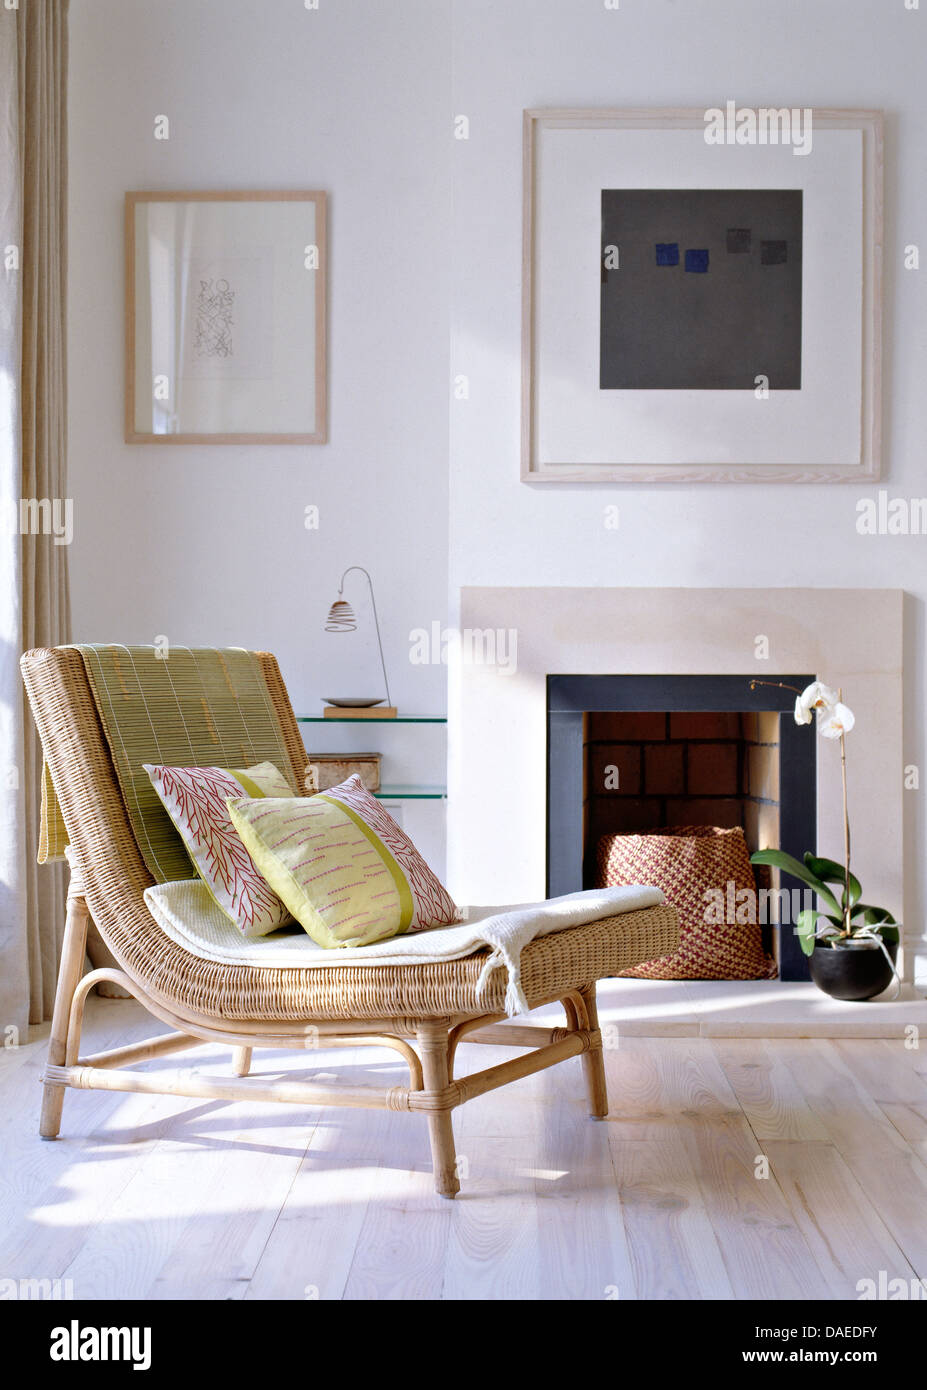 Embroidered Lime Green Cushions On Rattan Chair With Raffia Mat In Modern Living Room Picture